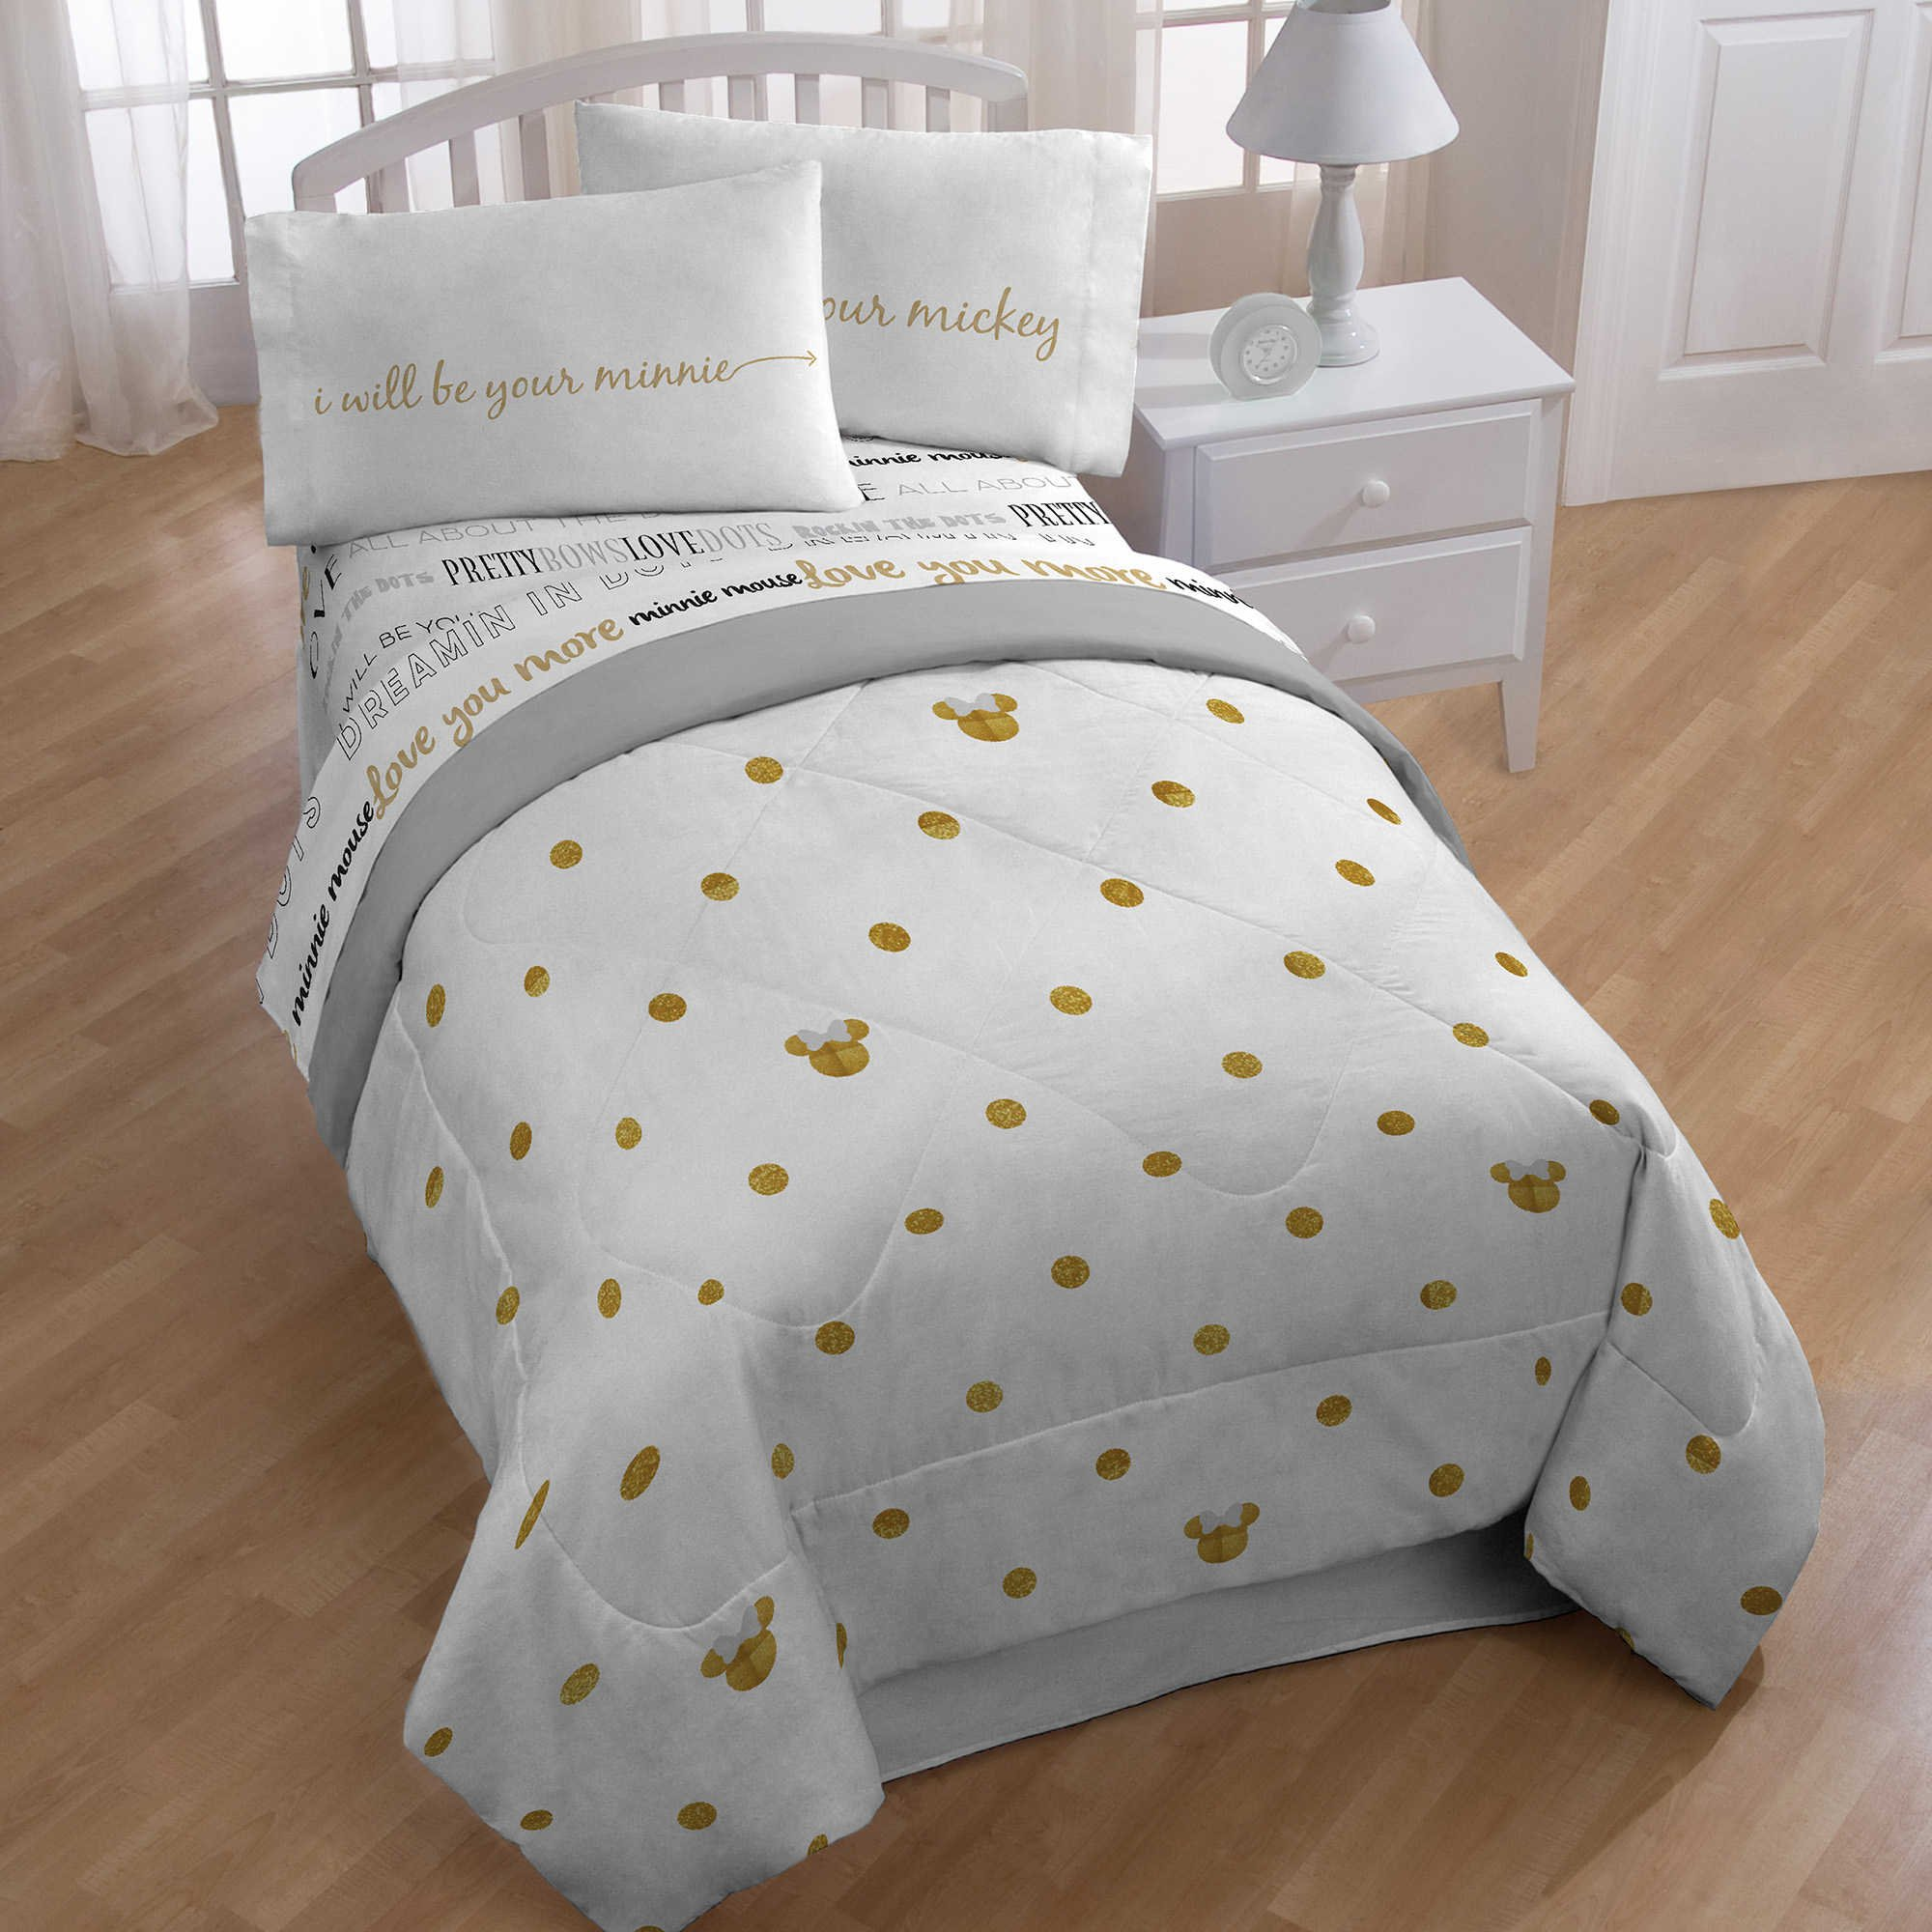 NEW! Disney Minnie Mouse Full Size Bedding Set For Kids, Includes Gold Polka Dot Comforter, Flat Sheet, Fitted Sheet, and Pillowcases Made of 100% Polyester